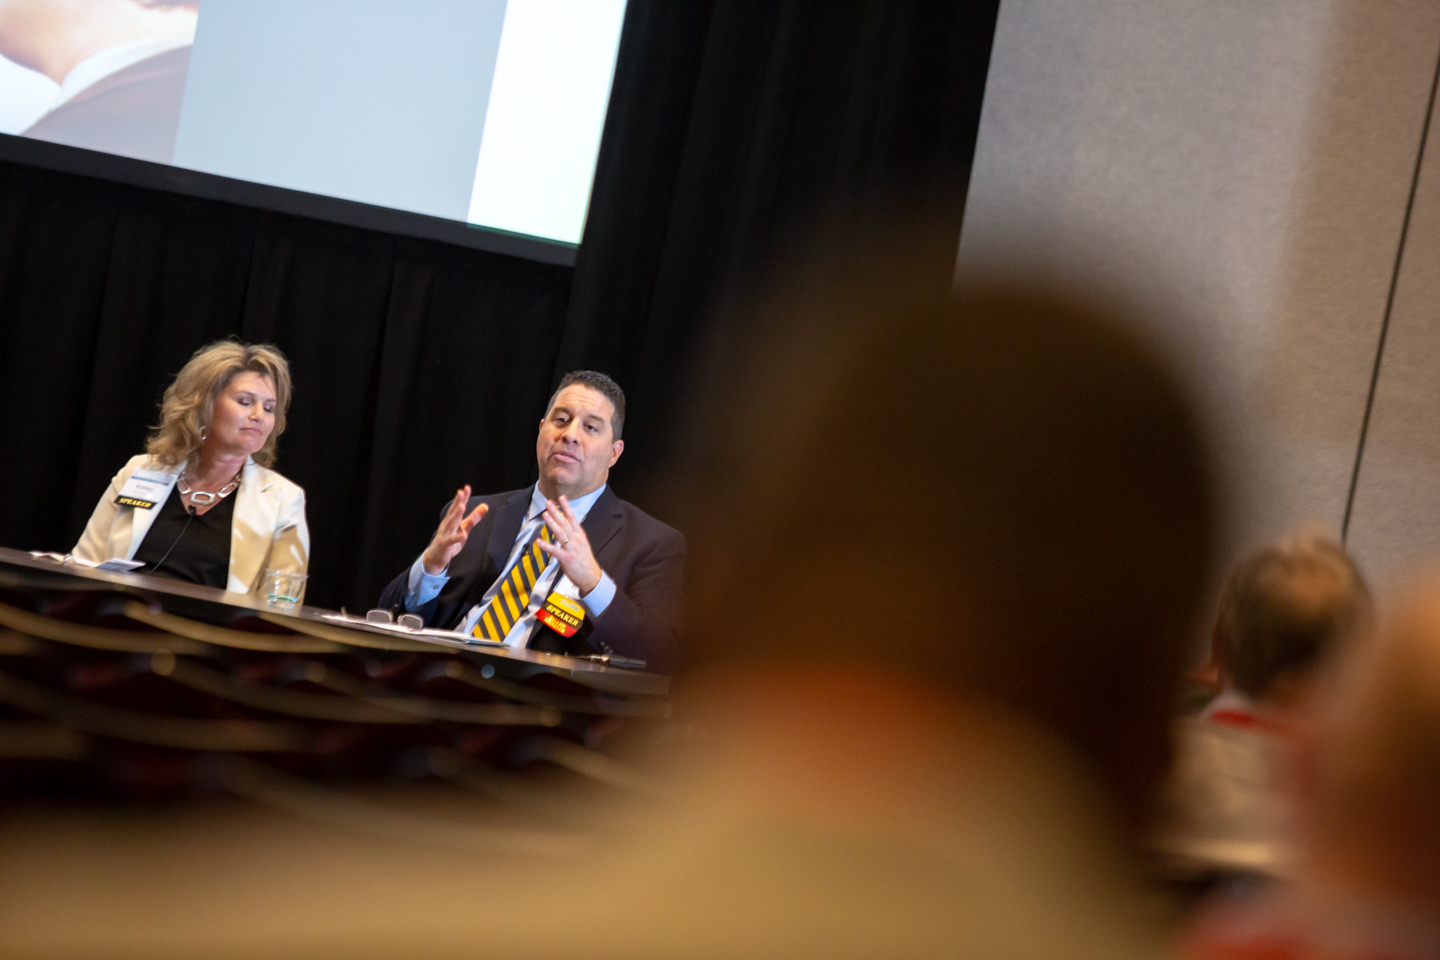 AAPPR-Conference-Expo-Professional-Event-Photography-Photographer-Orlando-panel-34.jpg